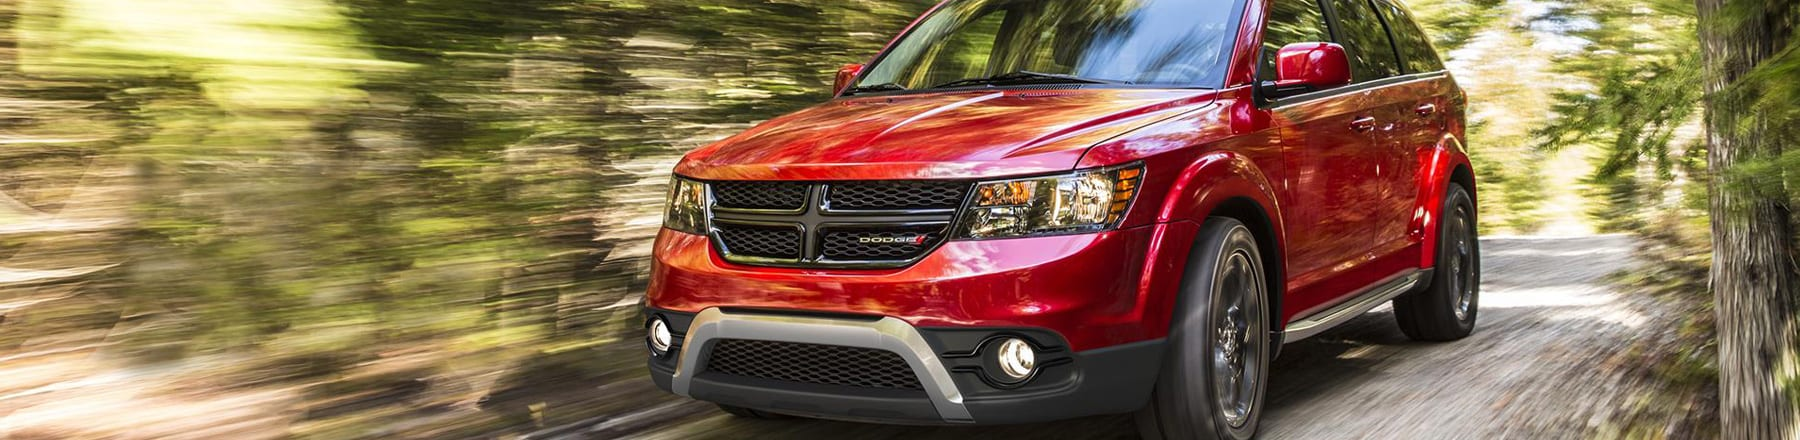 2016 Dodge Journey in Edmonton, AB